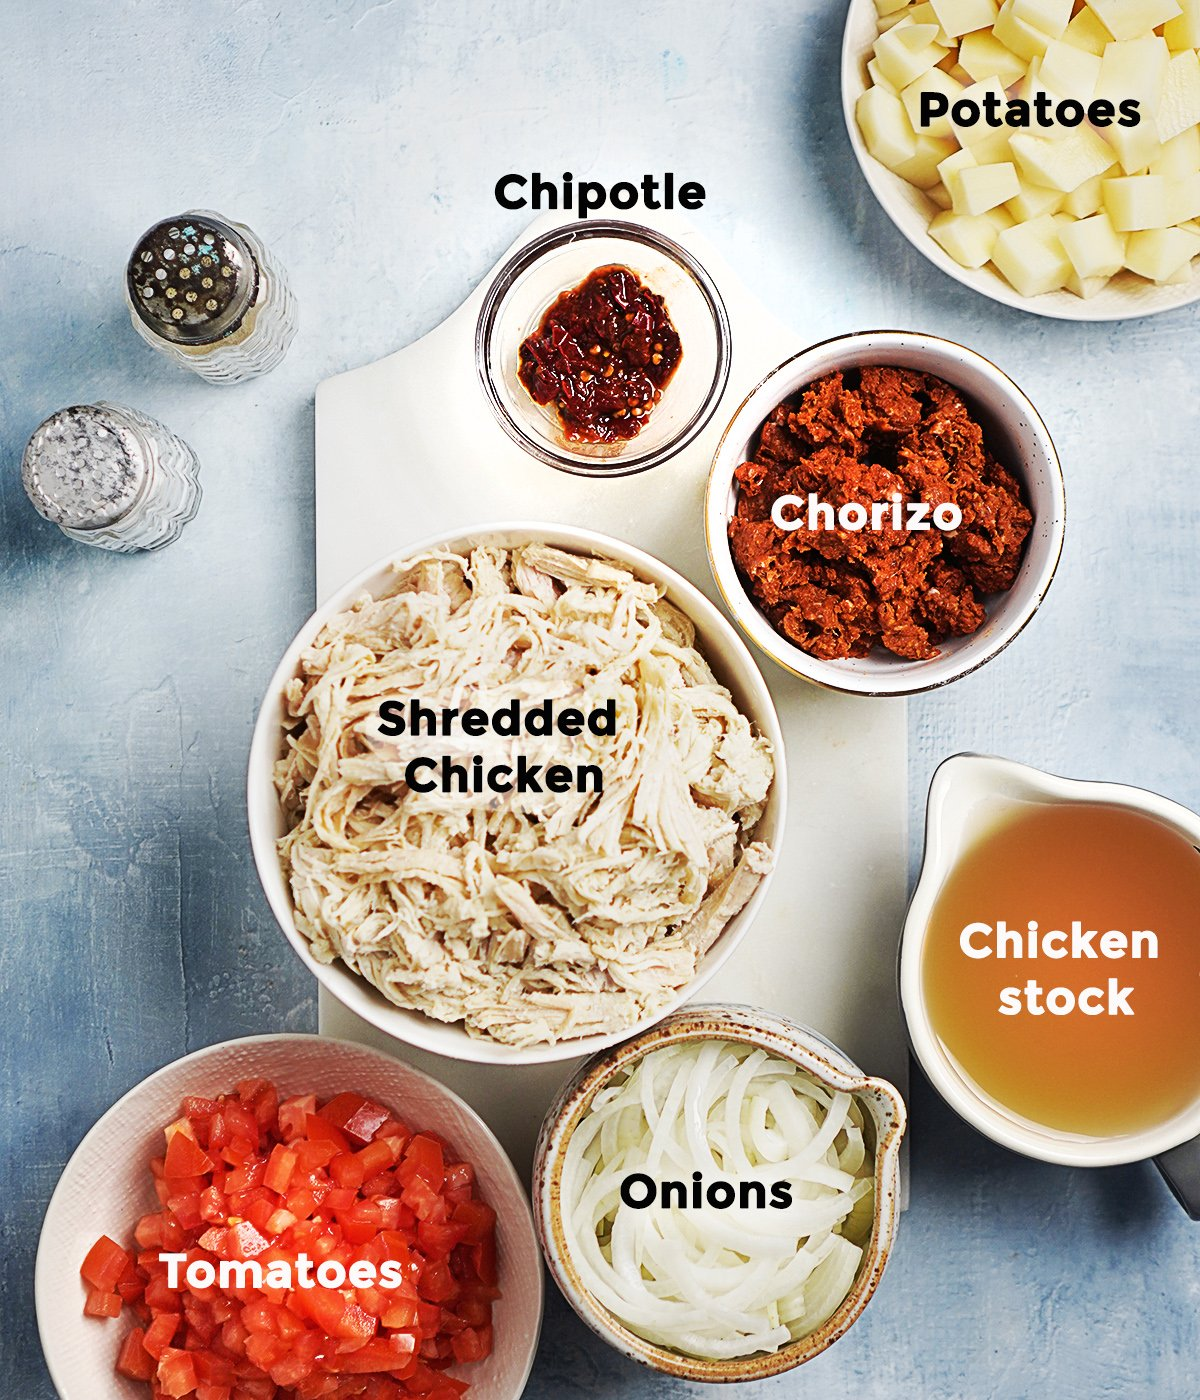 Ingredients in small bowls: shredded chicken, chorizo, onions, tomatoes, chipotle pepper and cubed potatoes